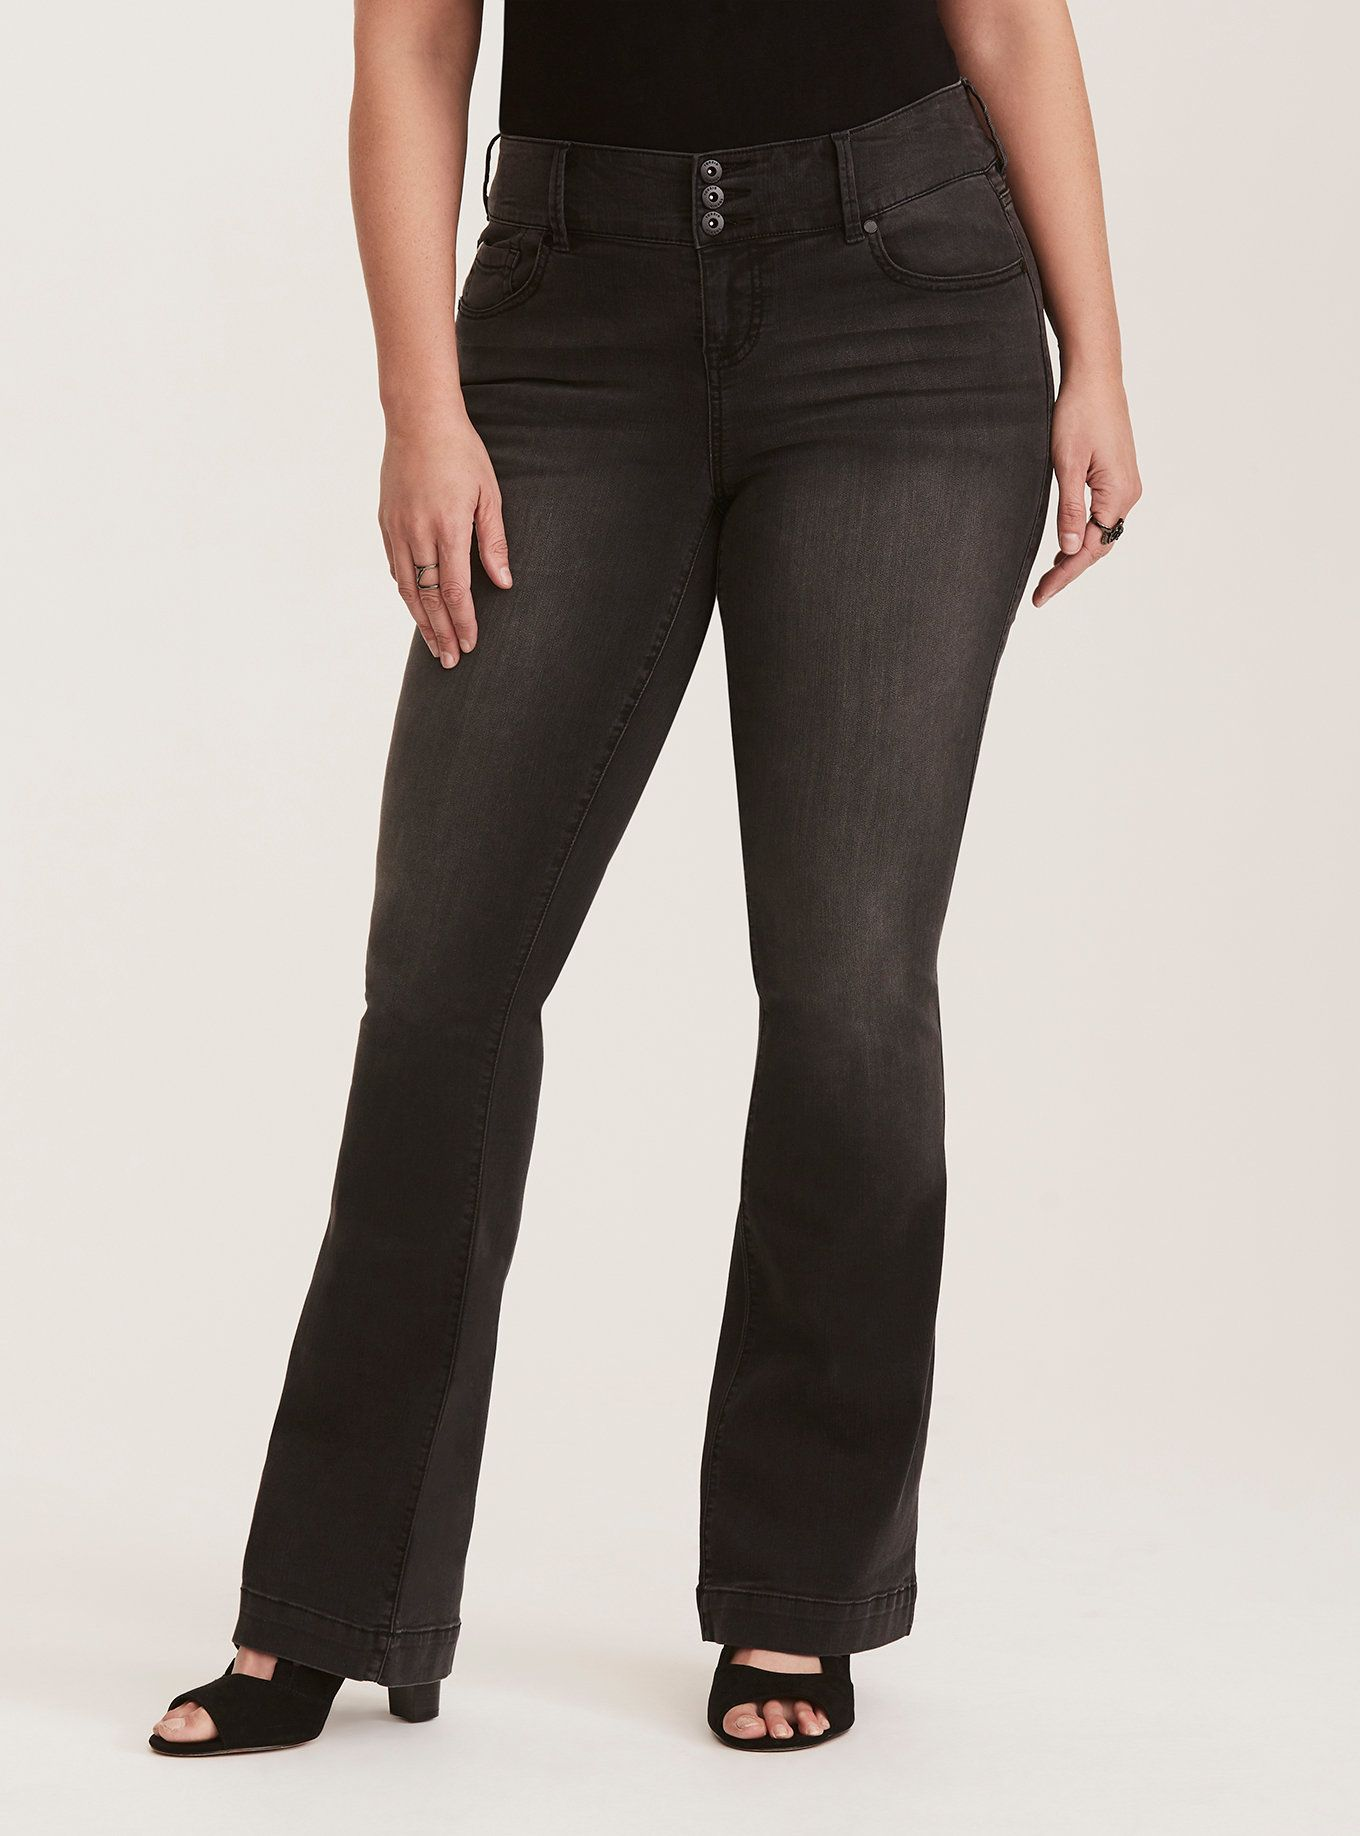 6893de06aa30d Three-Button Flared Jeans - Black Wash in 2019